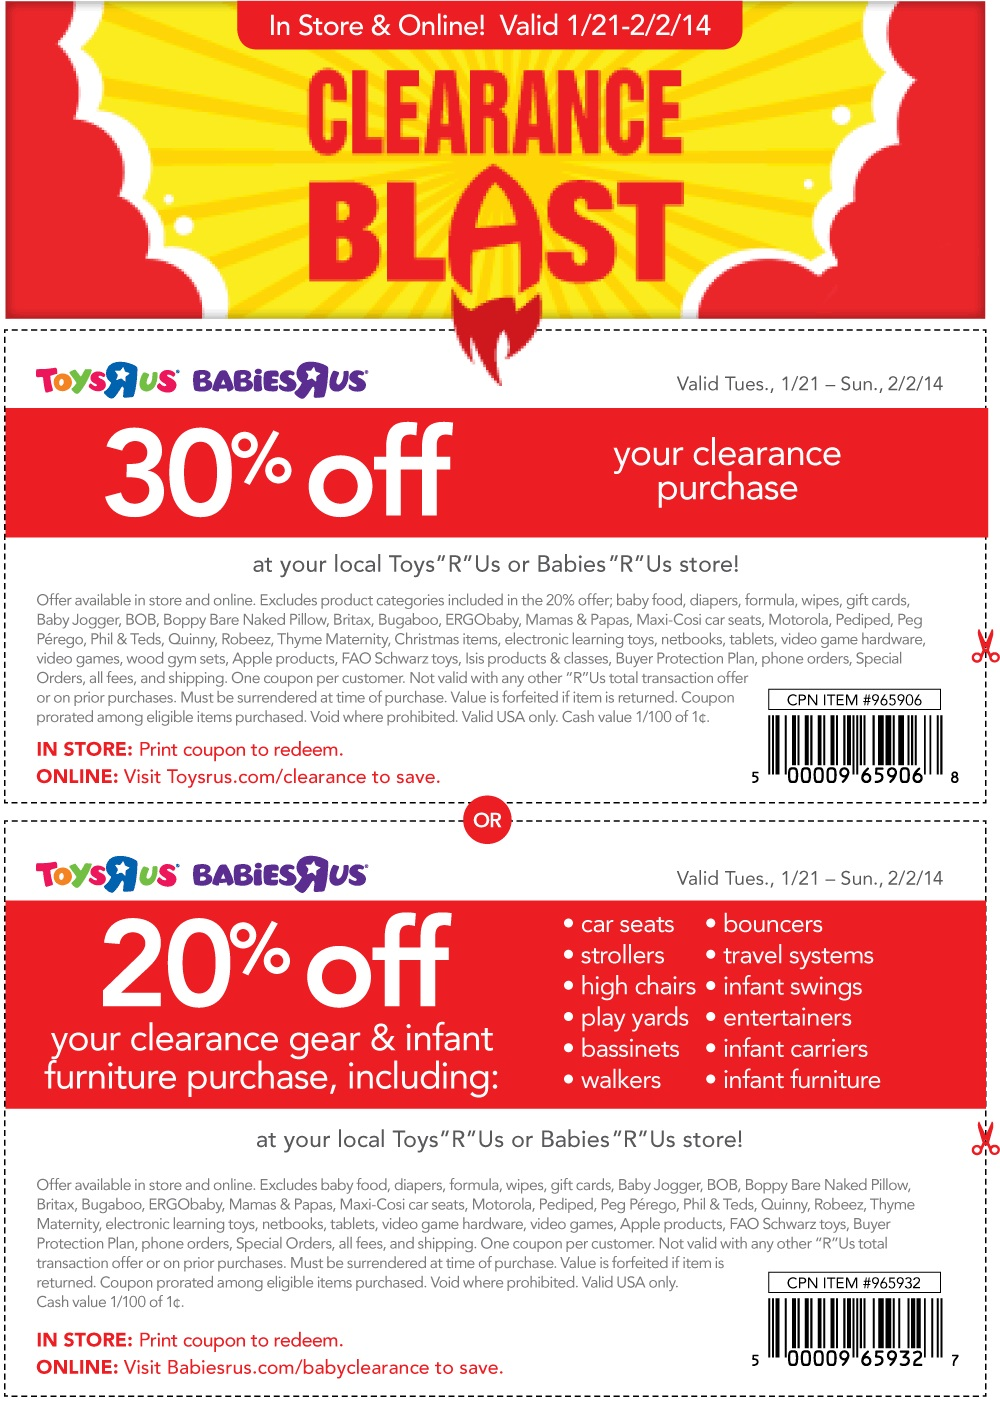 20 Off Babies R Us Online : babies, online, Babies, Coupons, Promotional, Printable, Online